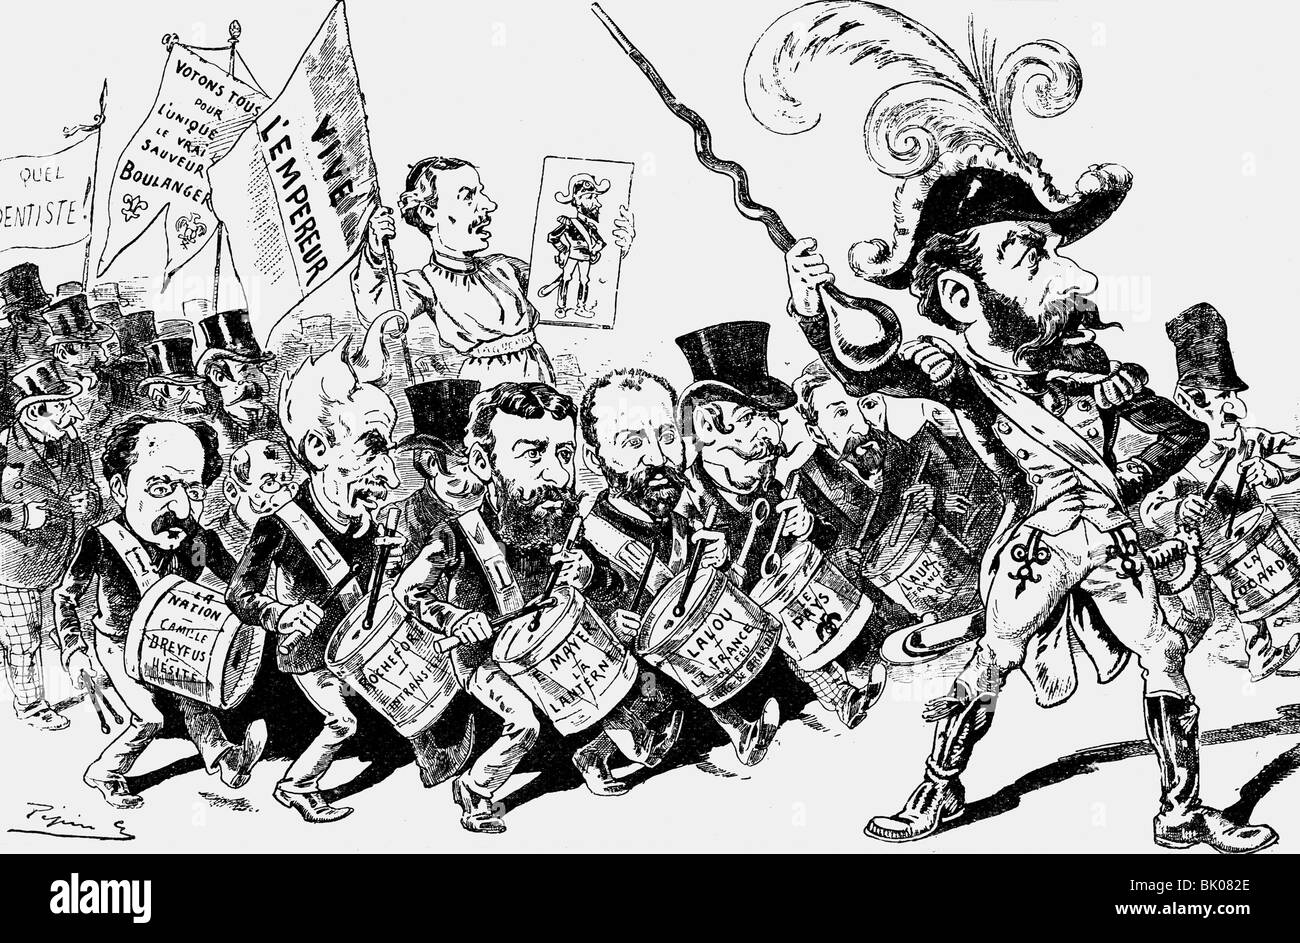 Boulanger, George, 29.4.1837 - 30.9.1891, French General and politician, caricature, 'The Advance of the enemies - Stock Image